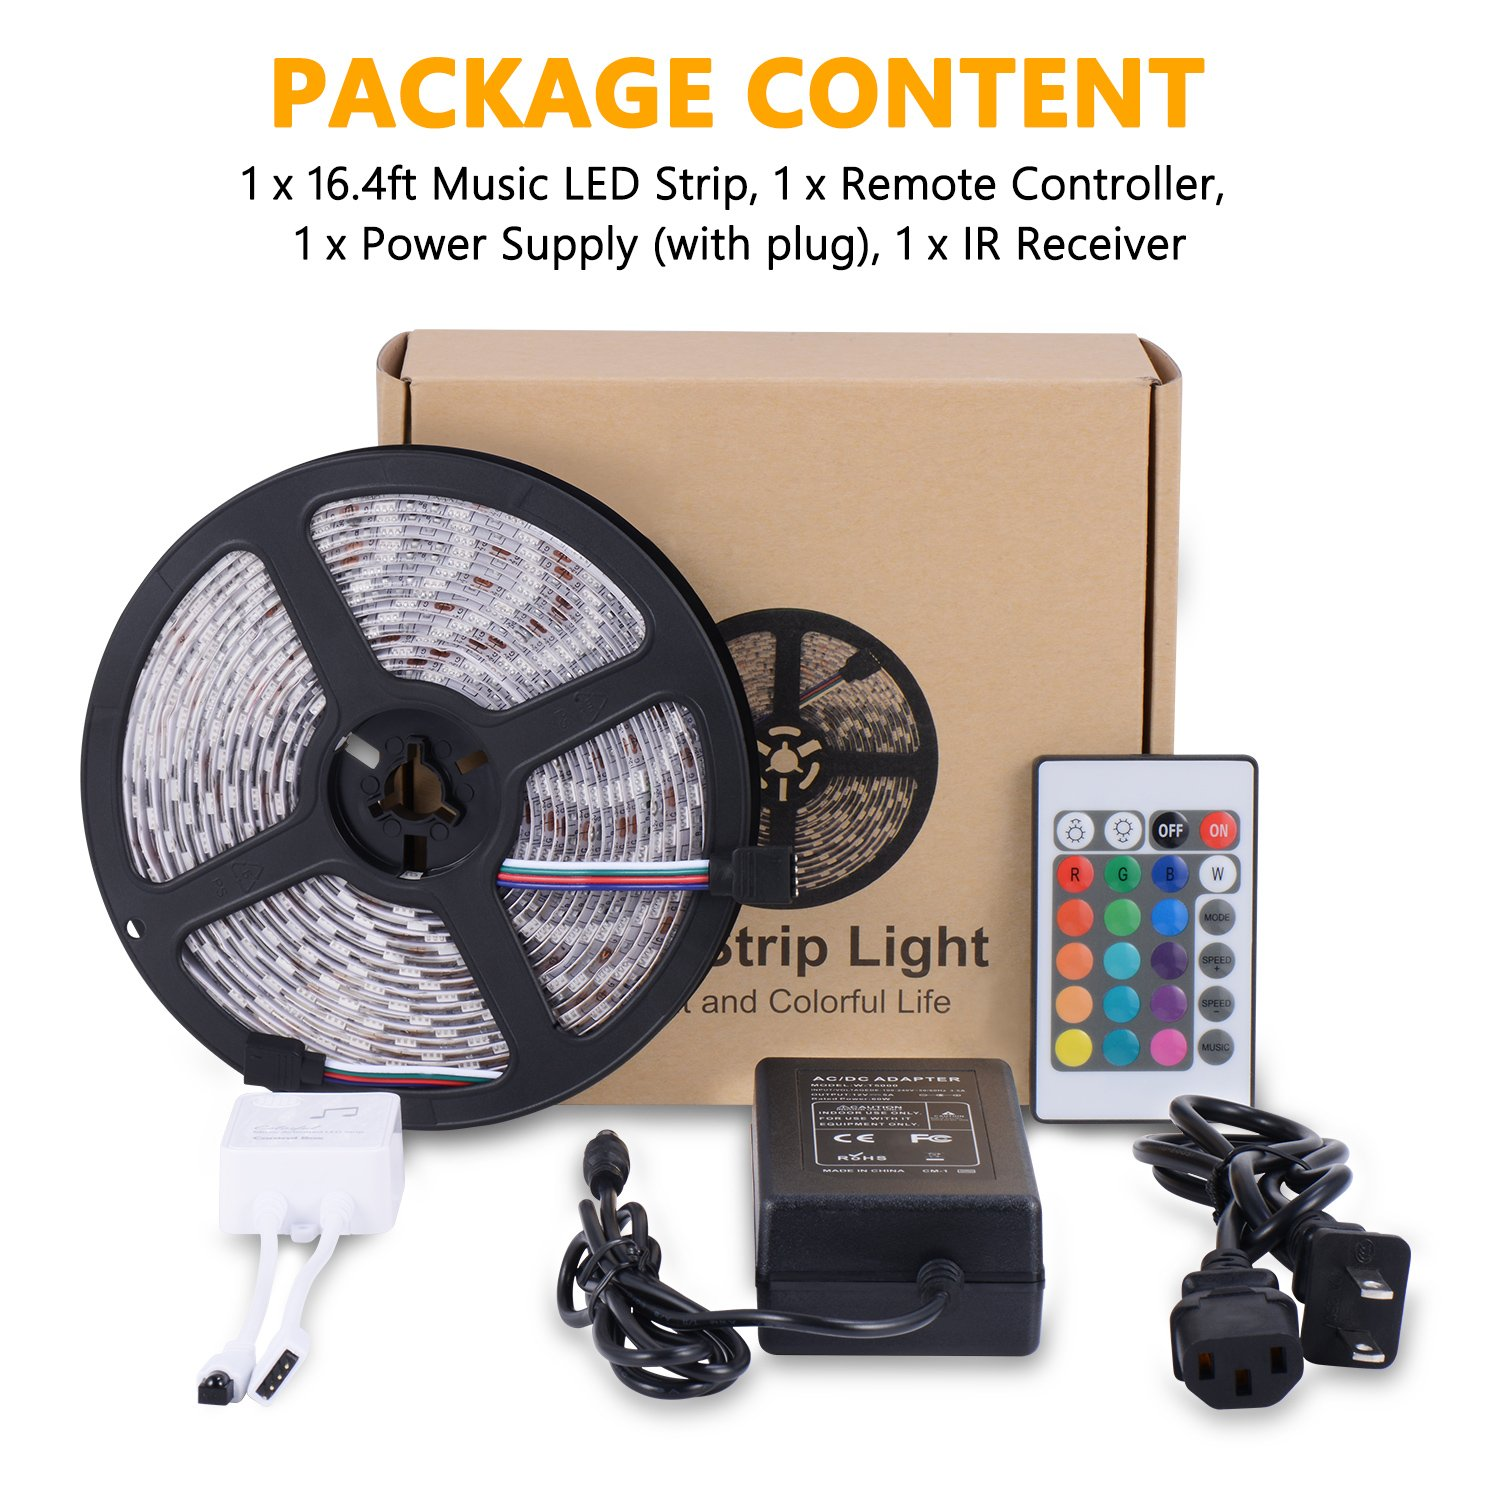 SUNNEST Music Activated LED Strip Light Kit, Waterproof 16.4ft 300 LEDs RGB SMD 5050 LED Tape with Remote Controller, IR Receiver, Power Supply, Sync with Music by SUNNEST (Image #7)